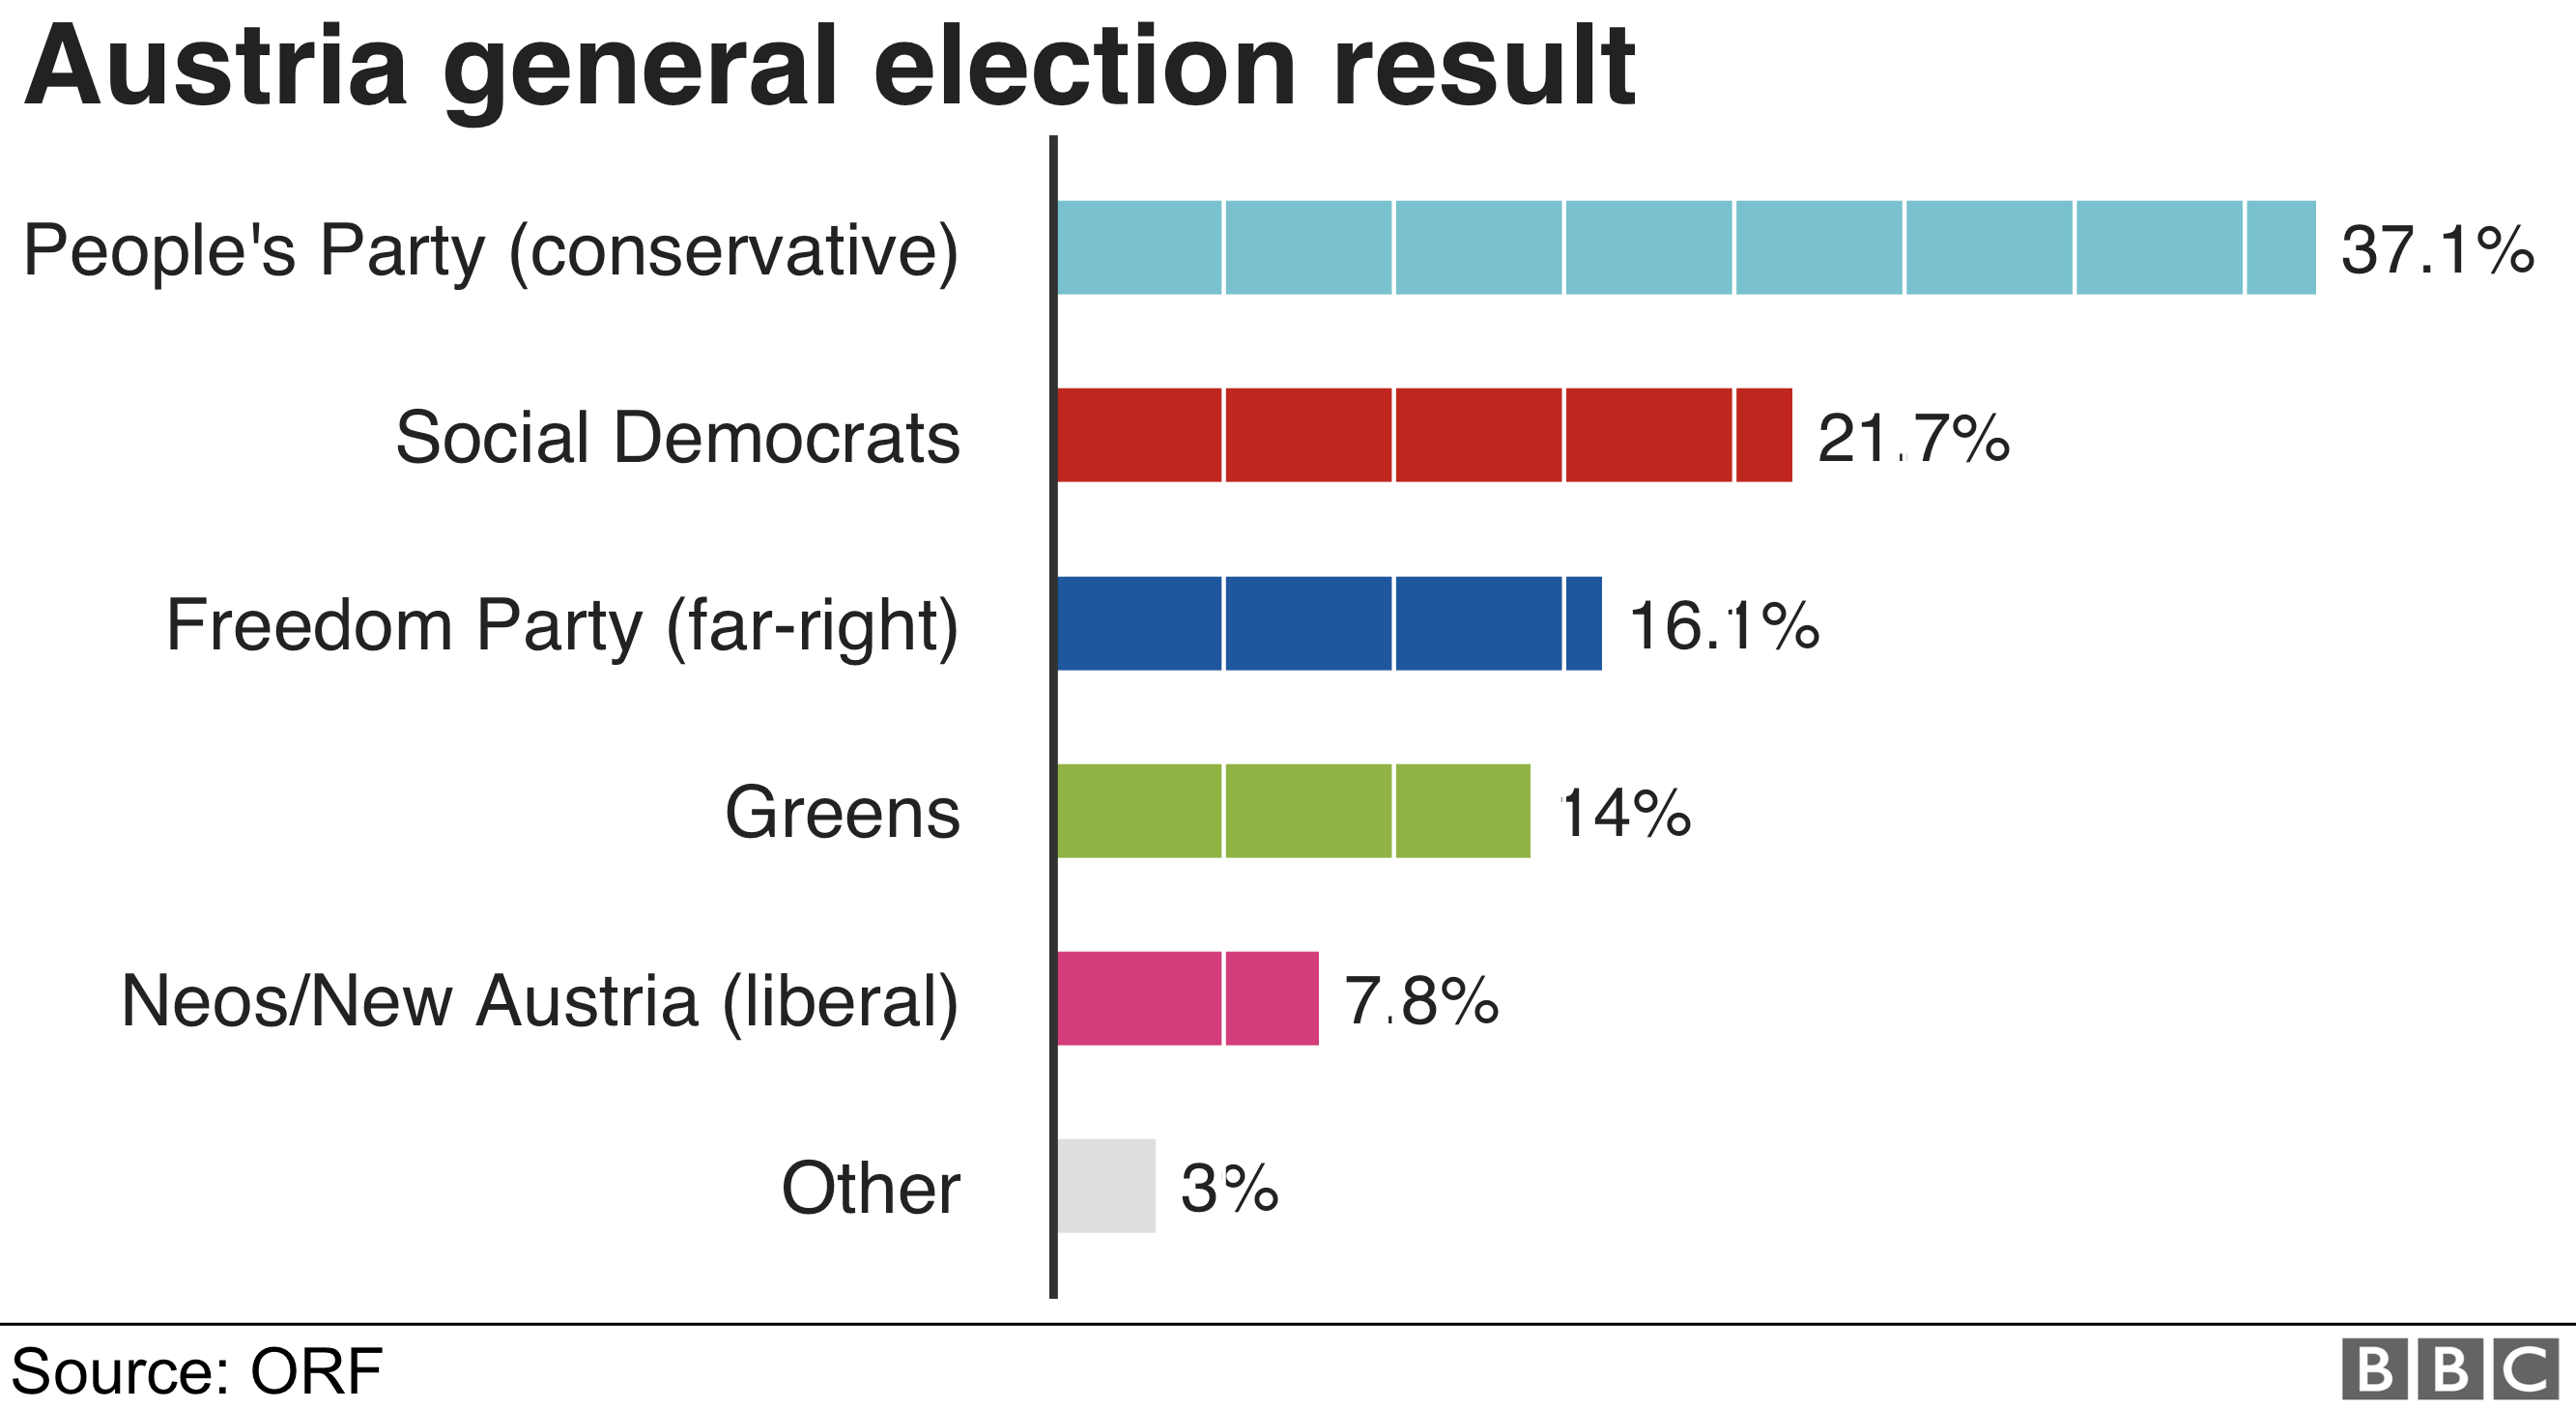 Chart showing that the People's Party won 37% of the vote